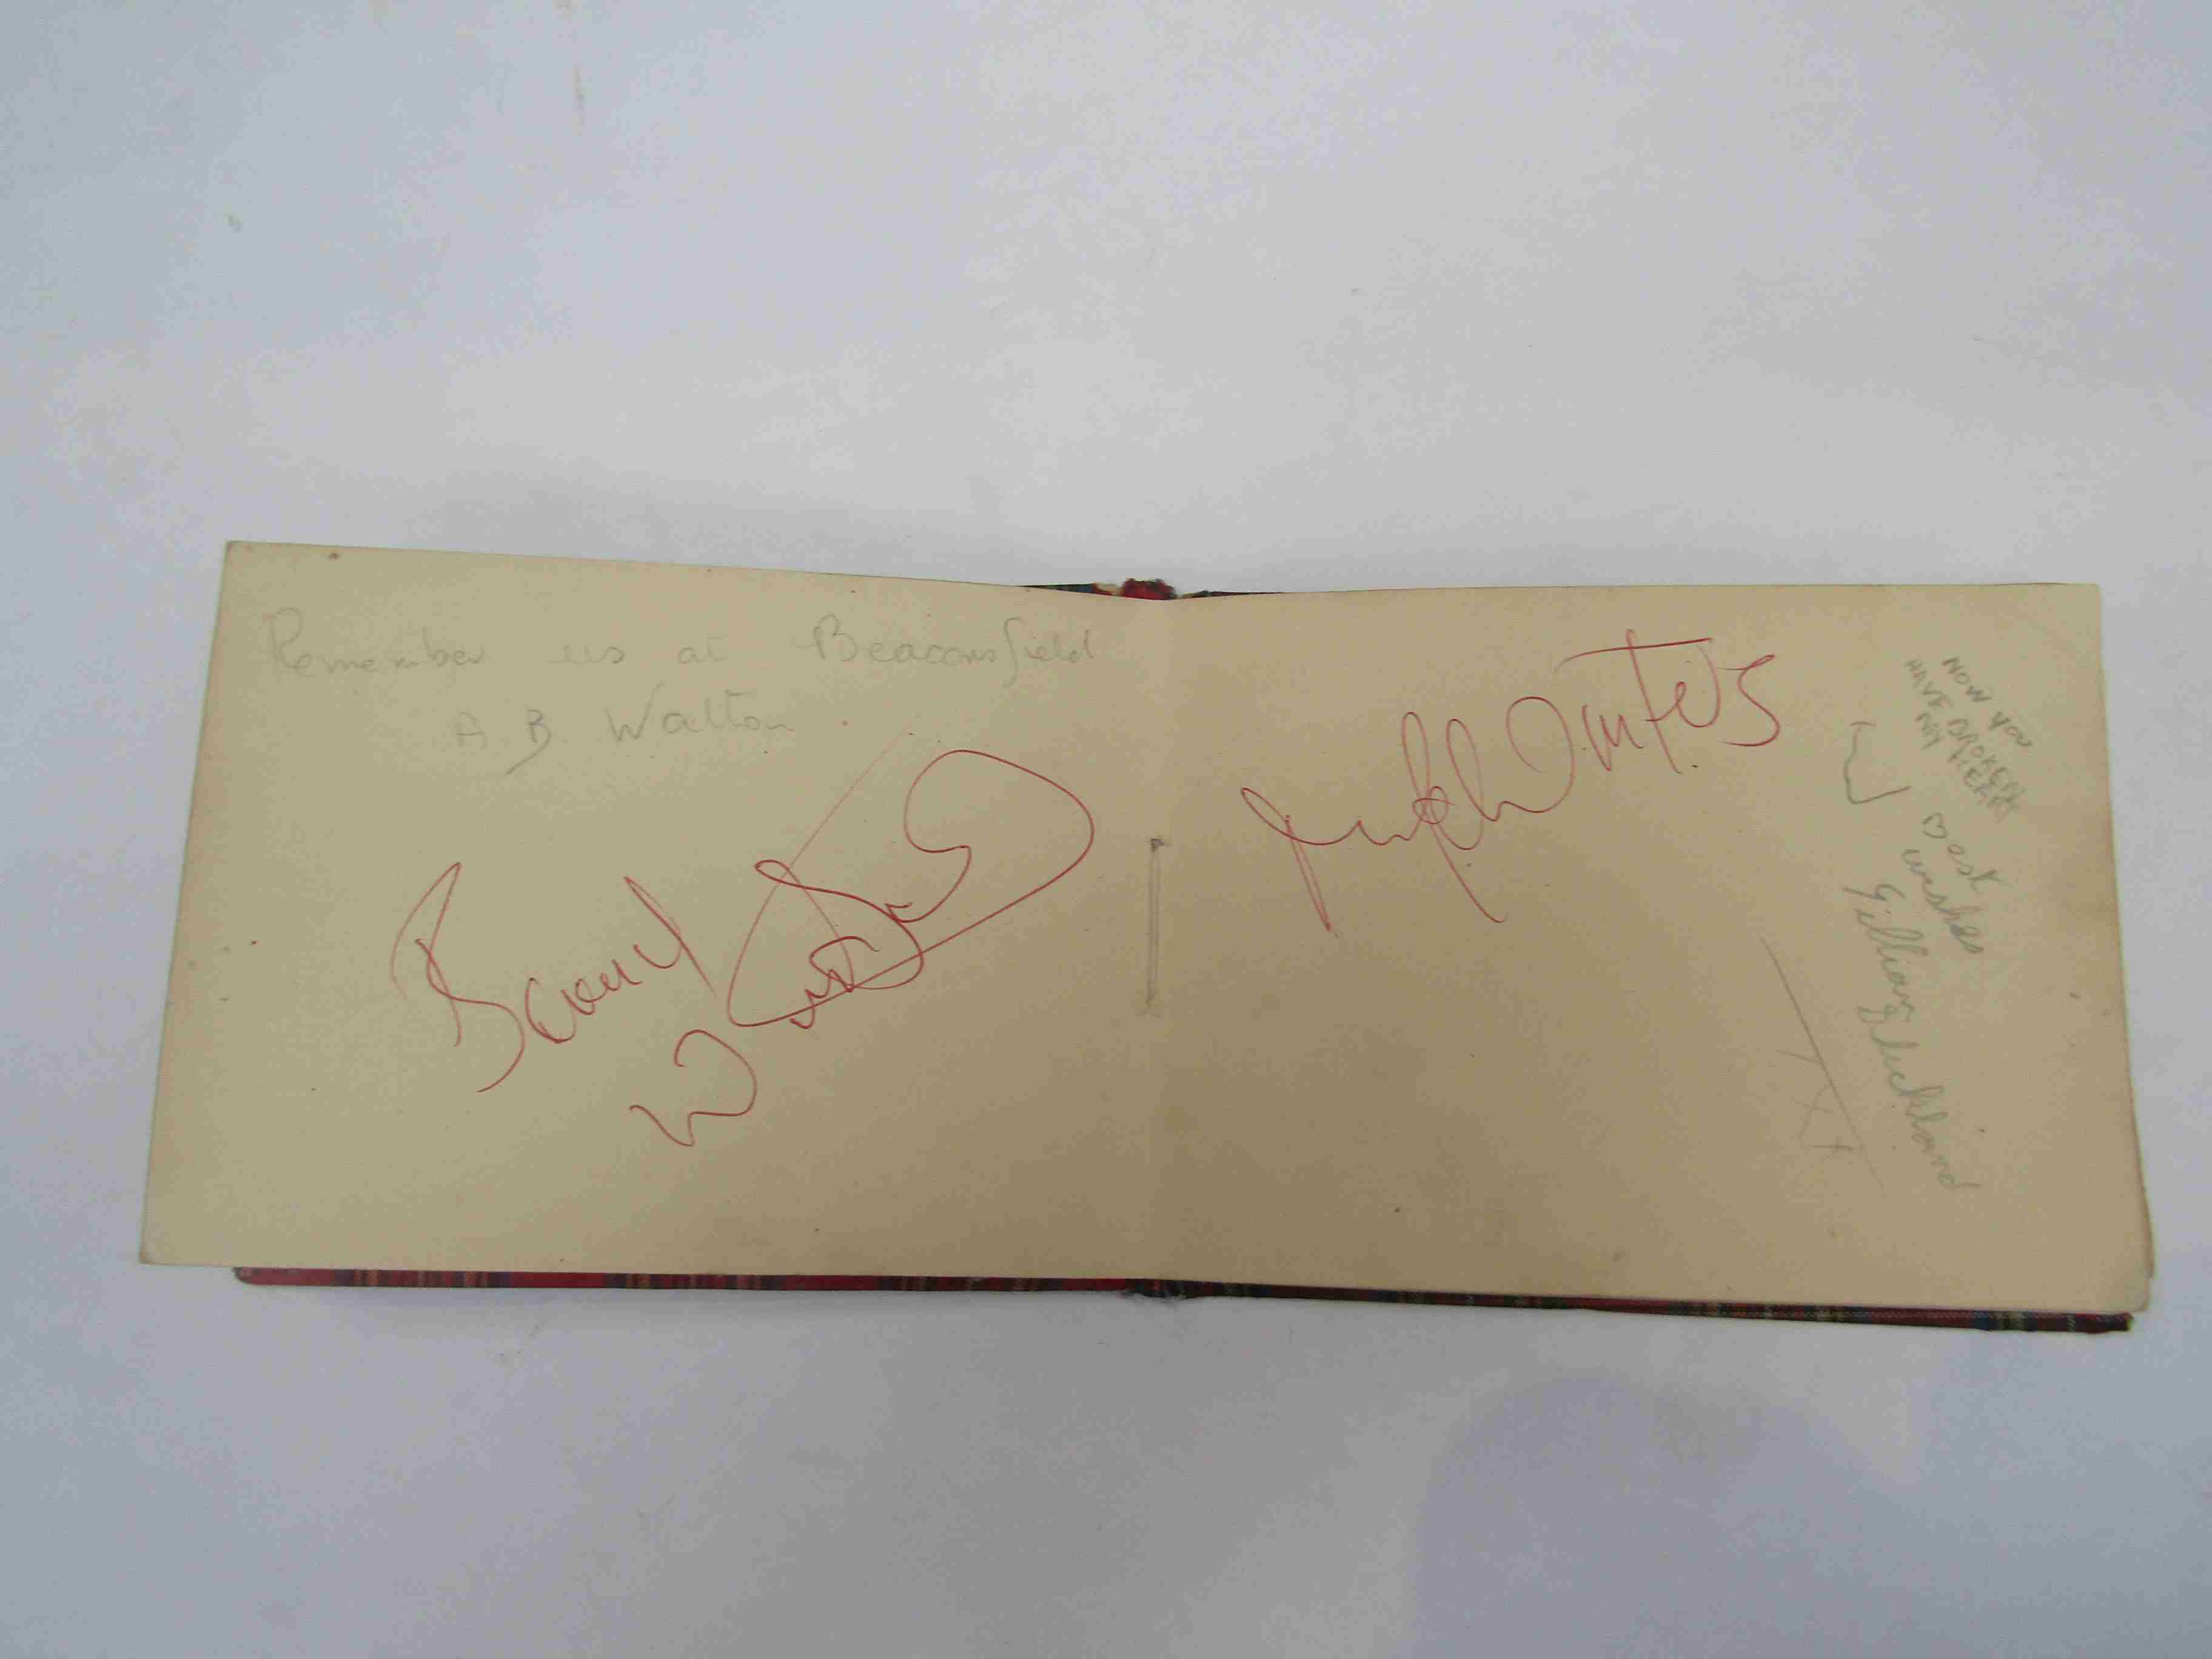 Two 1950s/60s autograph books containing autographs by Benny Hill, Honor Blackman, Barbara Shelley, - Image 21 of 34